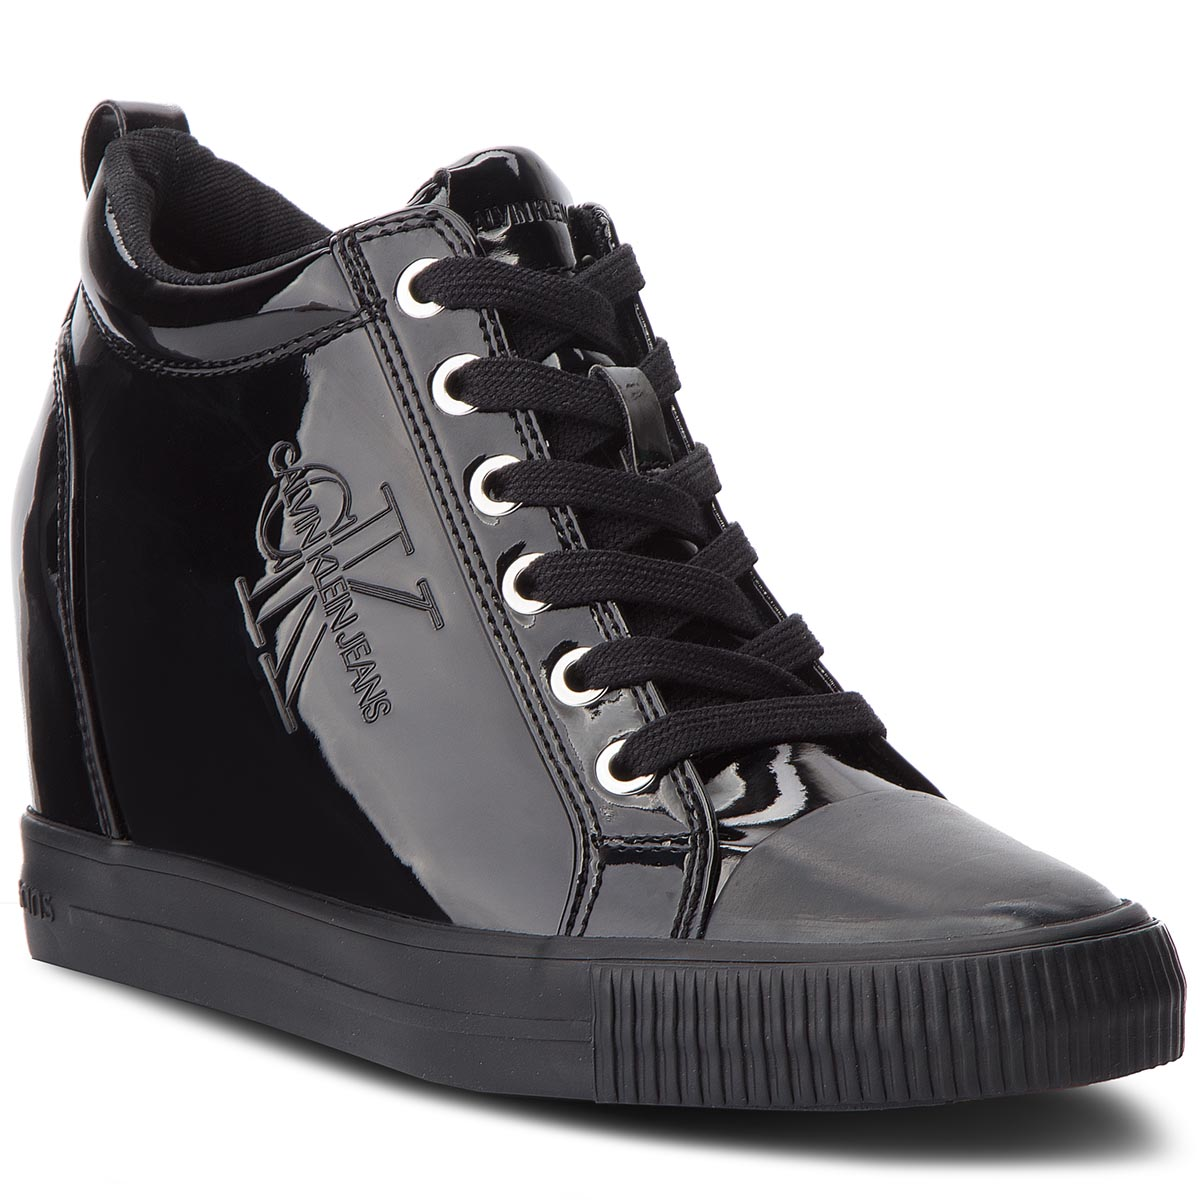 Sneakersy CALVIN KLEIN JEANS - Ritzy RE9799  Black